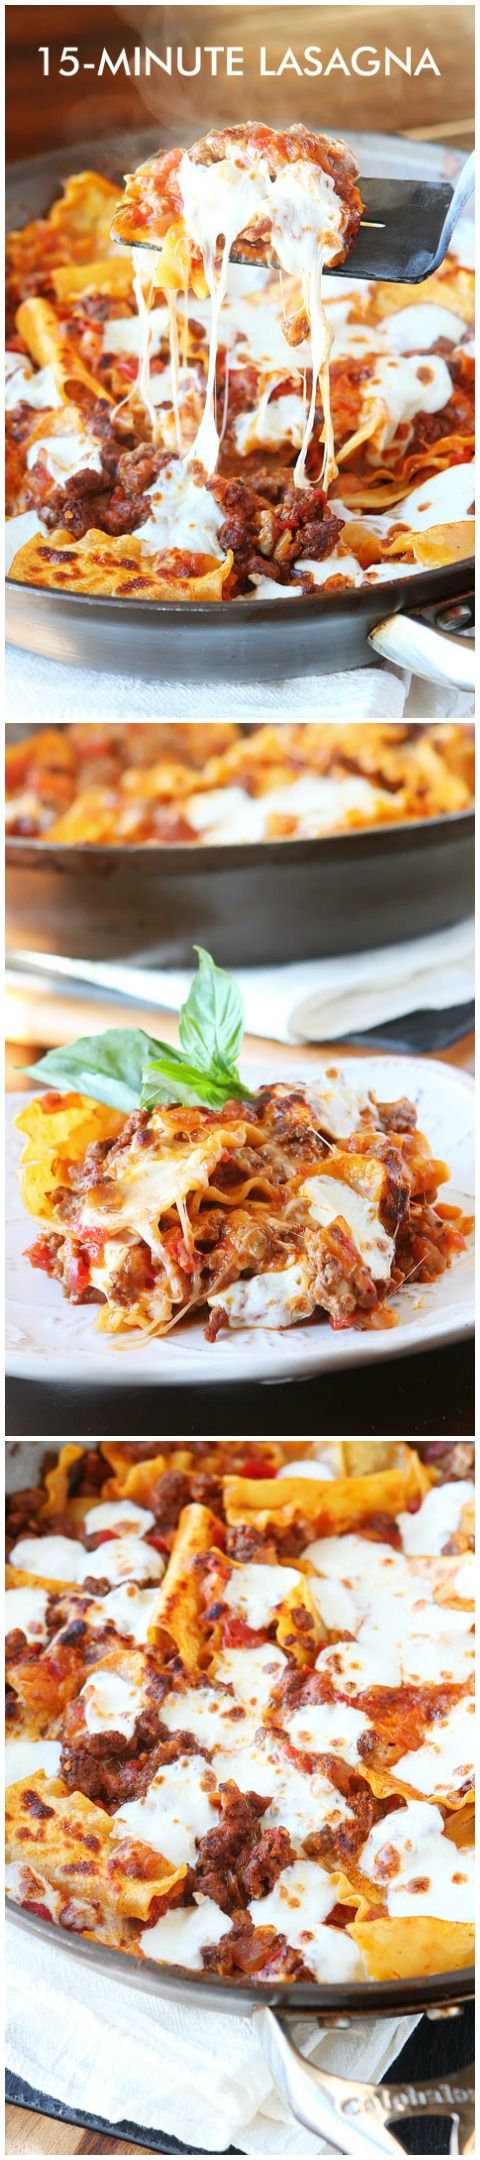 Easiest Ever 15-Minute Lasagna. This is the best lasagna ever because you cook everything in just ONE skillet on the stovetop in 15 minutes! Perfect for a hearty, home-cooked meal on busy weeknights! You dont even have to pre-boil the noodles. Ill never make lasagna the old fashioned way again!